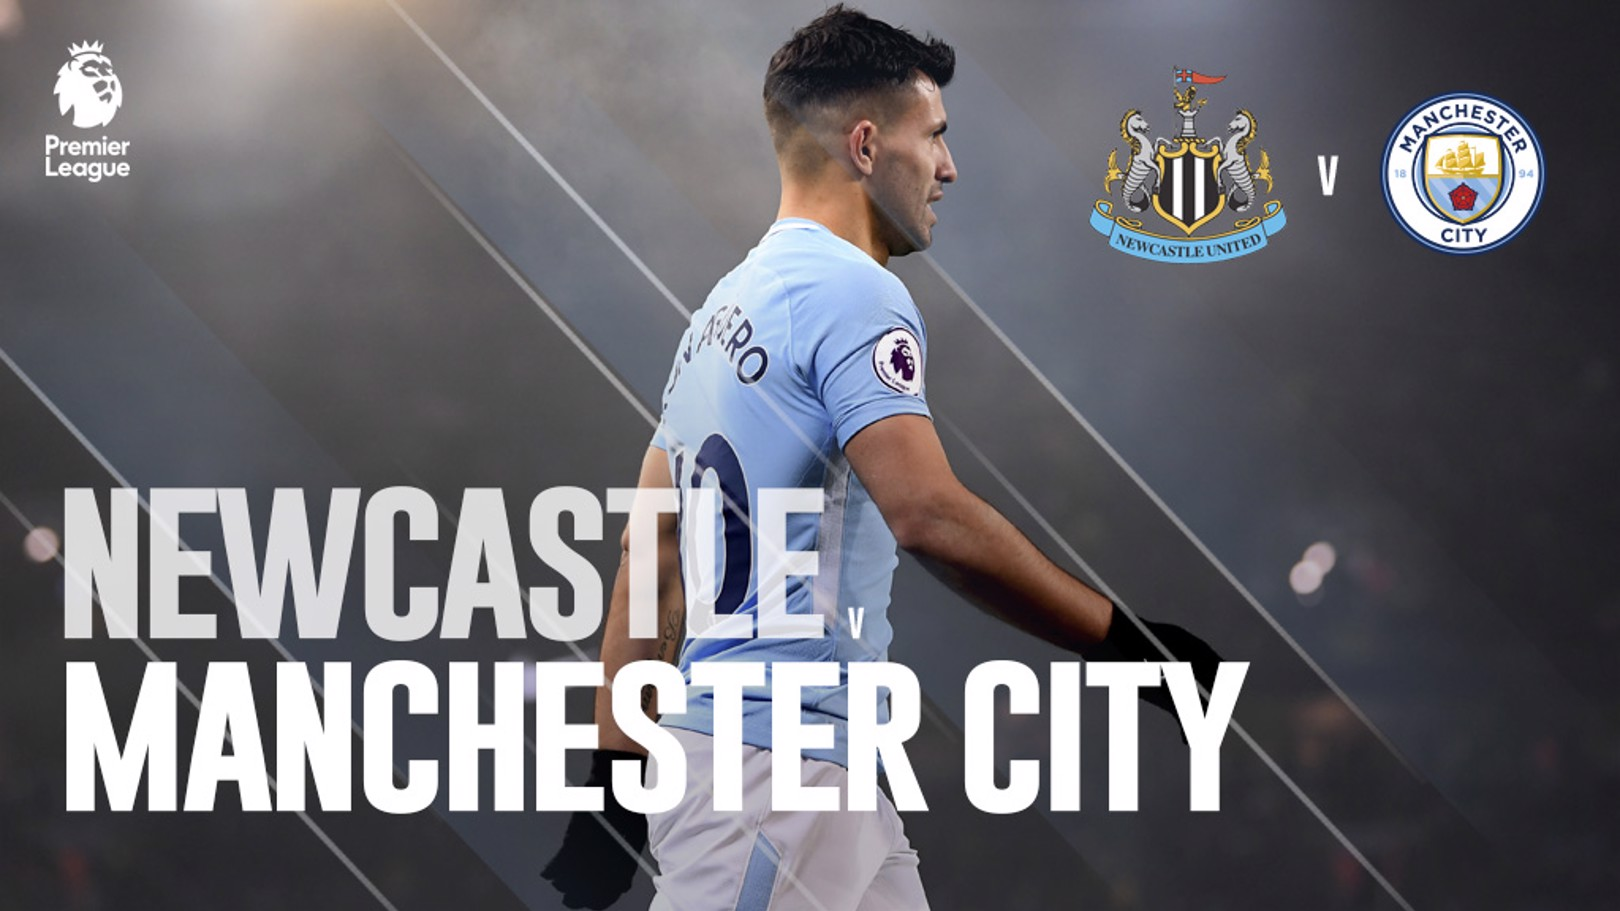 Newcastle - Man City.